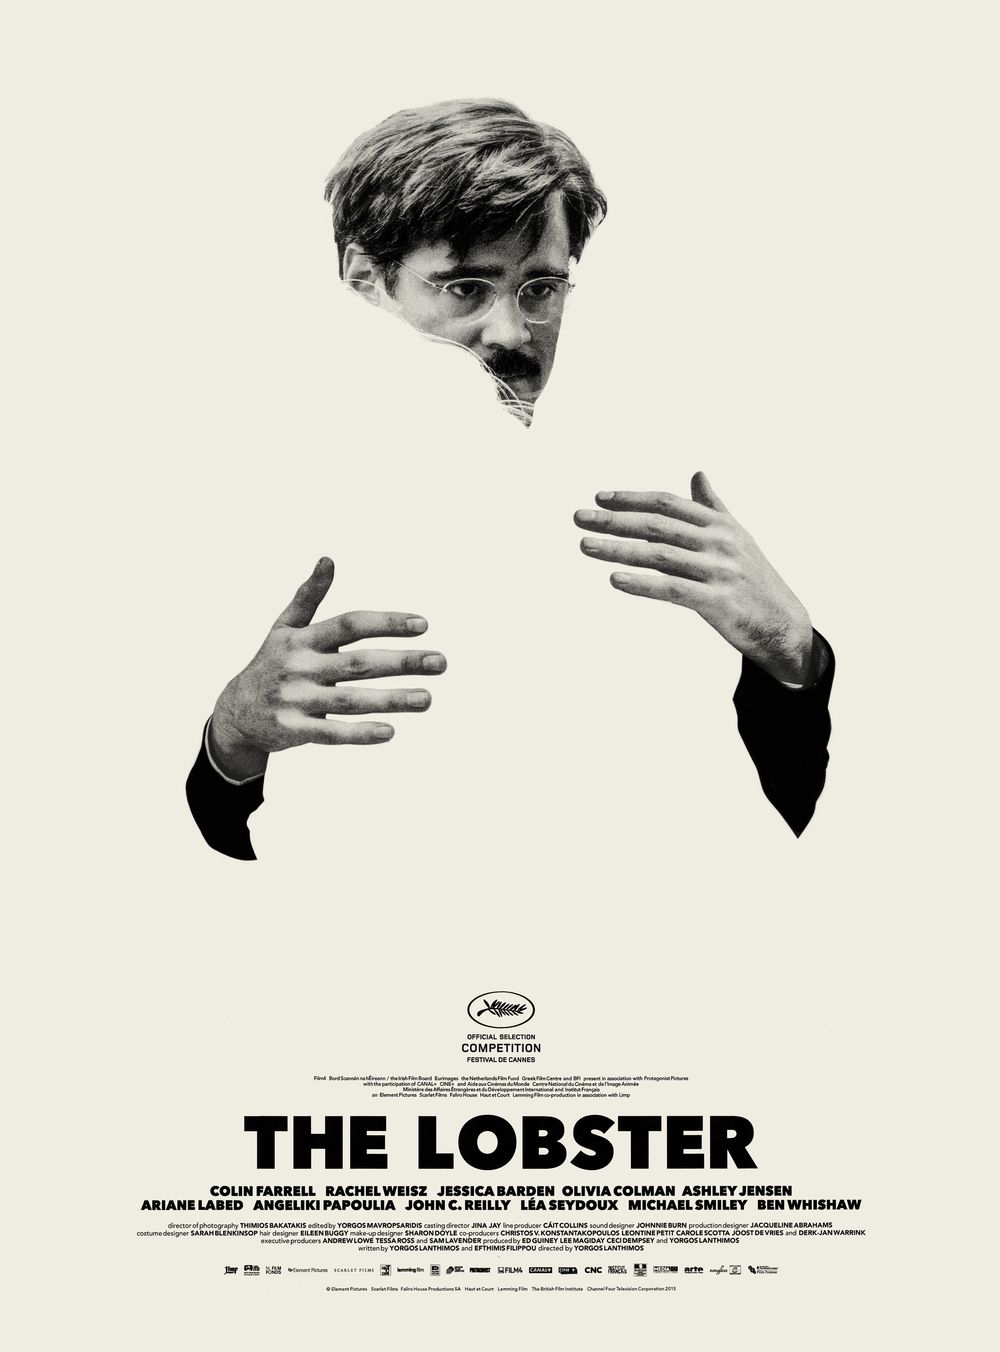 Day 2: The Lobster  - The second day of the year gave us our first film by Yorgos Lanthimos and it blew us away. This dude's a genius, seriously. Colin Farrel plays a man who is going to be transformed into a lobster if he can't find the perfect partner in 30 days.